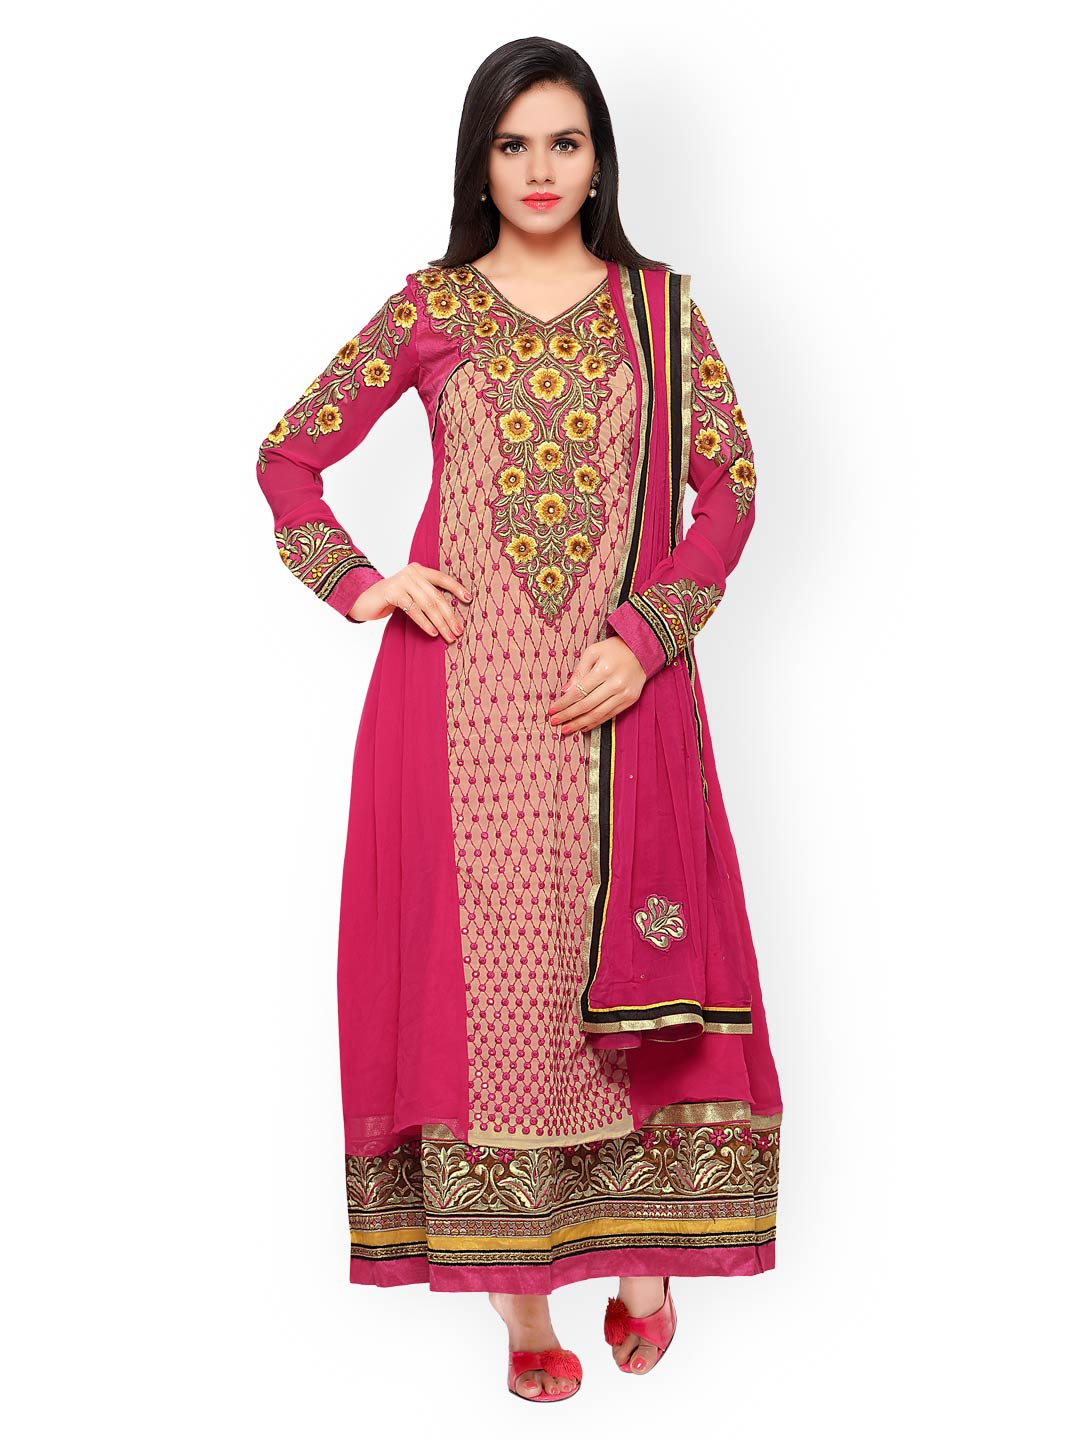 Touch Trends Pink Embroidered & Sequinned Georgette Semi-Stitched Dress Material image